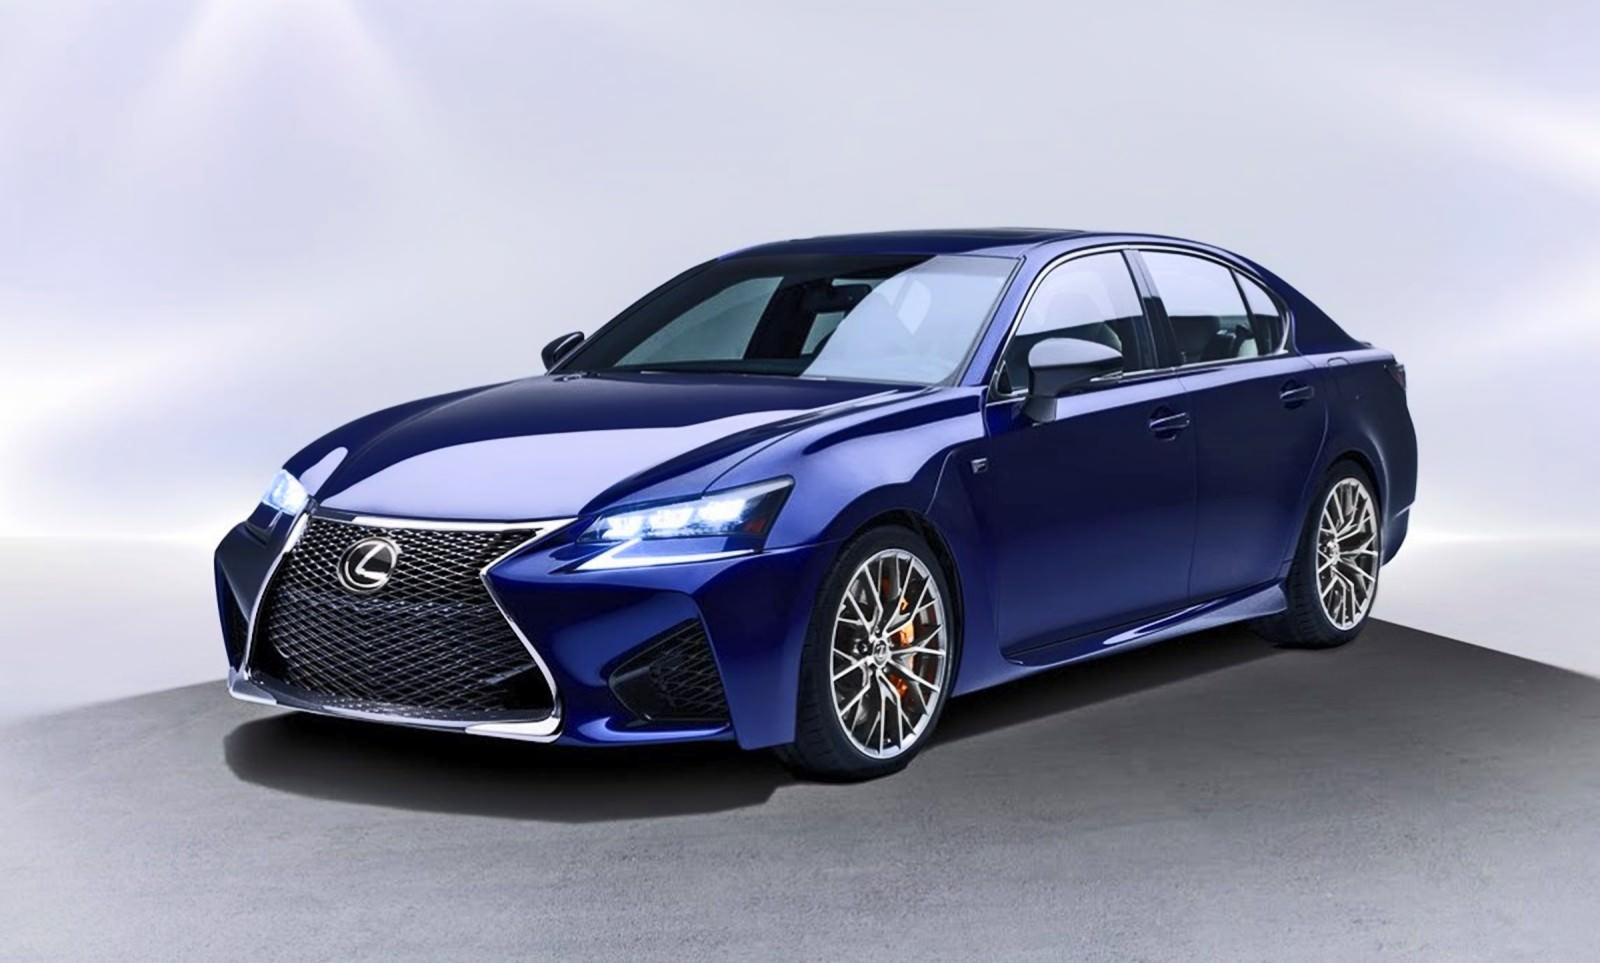 Lexus Is350 Specs >> 2018 Lexus Isf - New Car Release Date and Review 2018 | mygirlfriendscloset